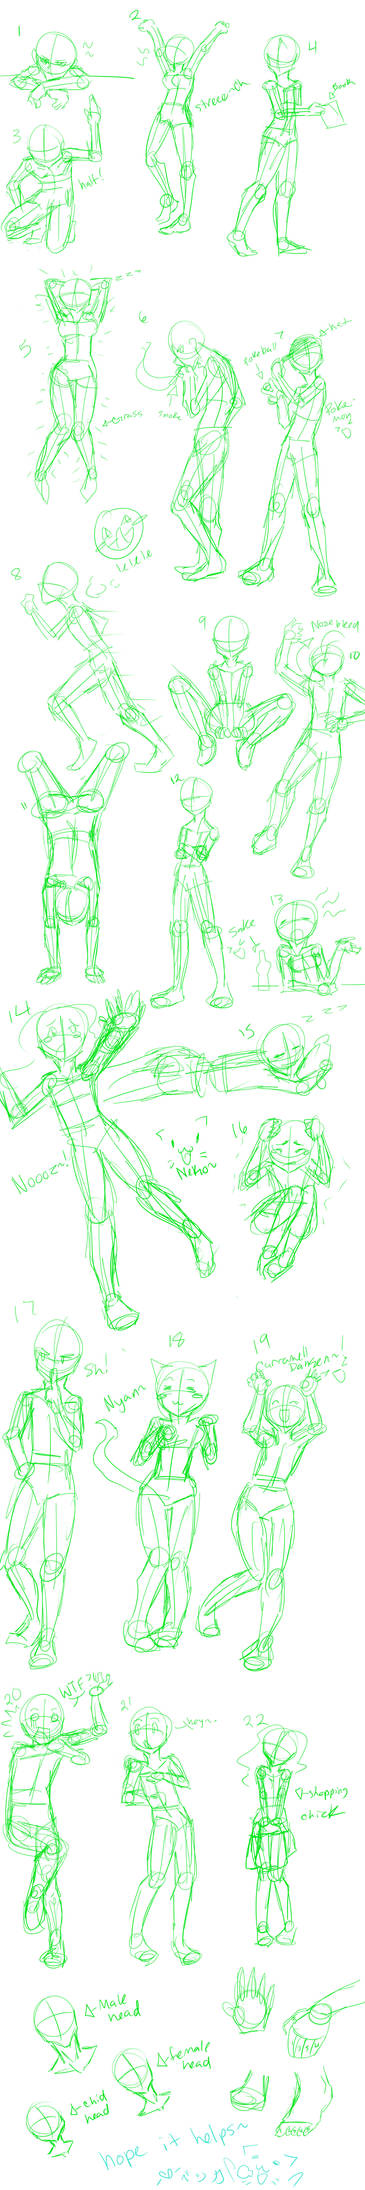 more than 20 poses